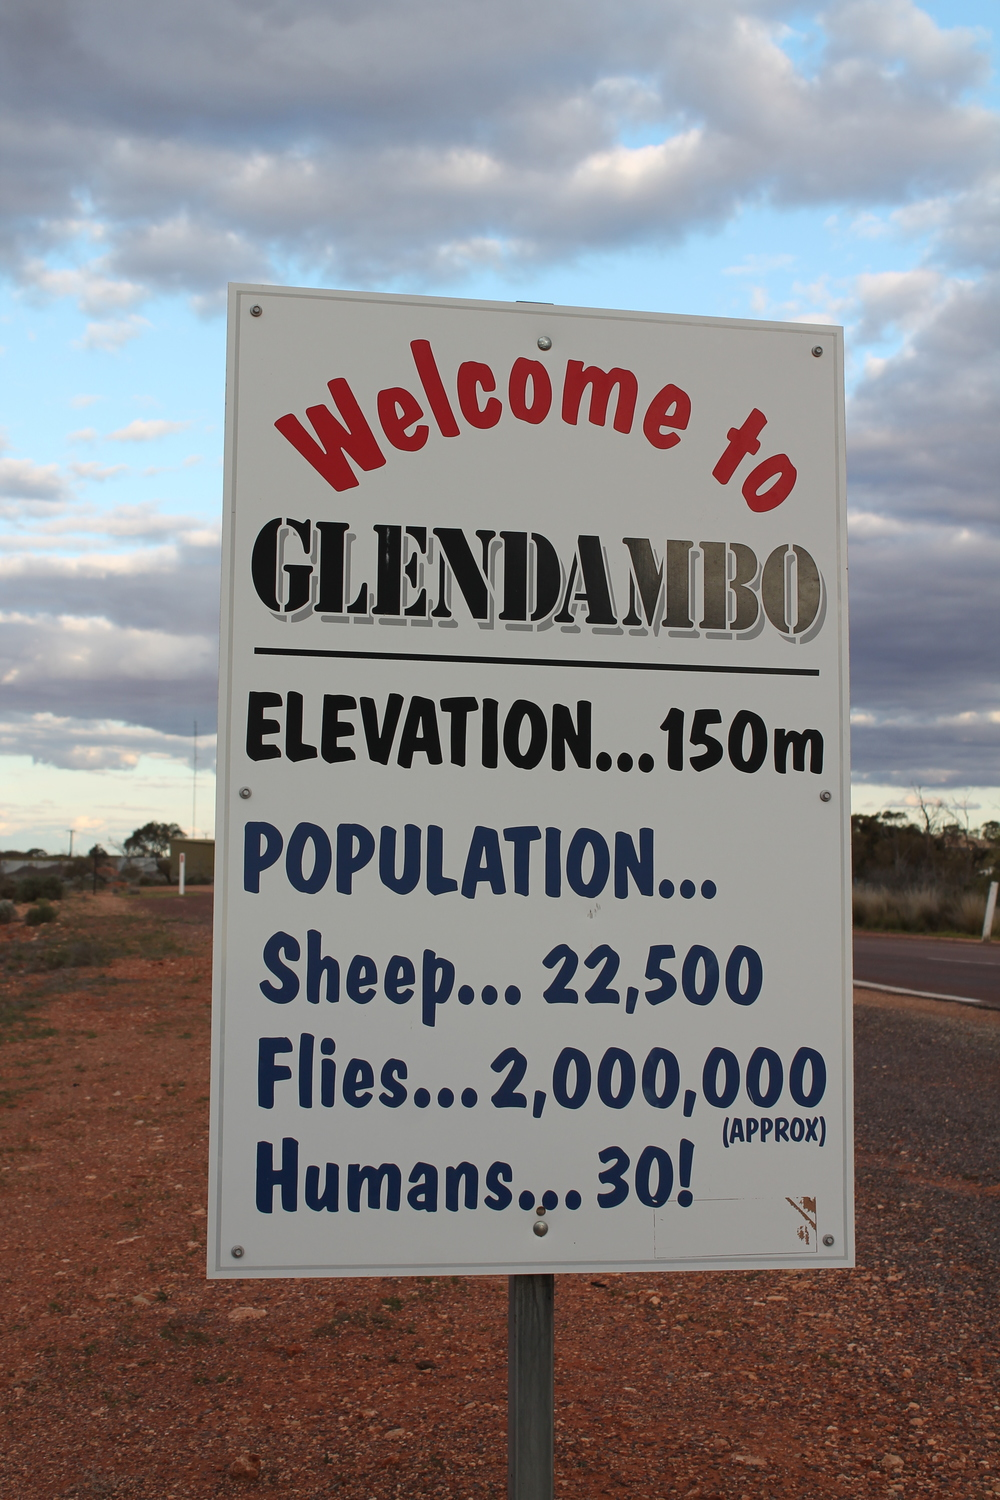 Last place we stayed in the outback.